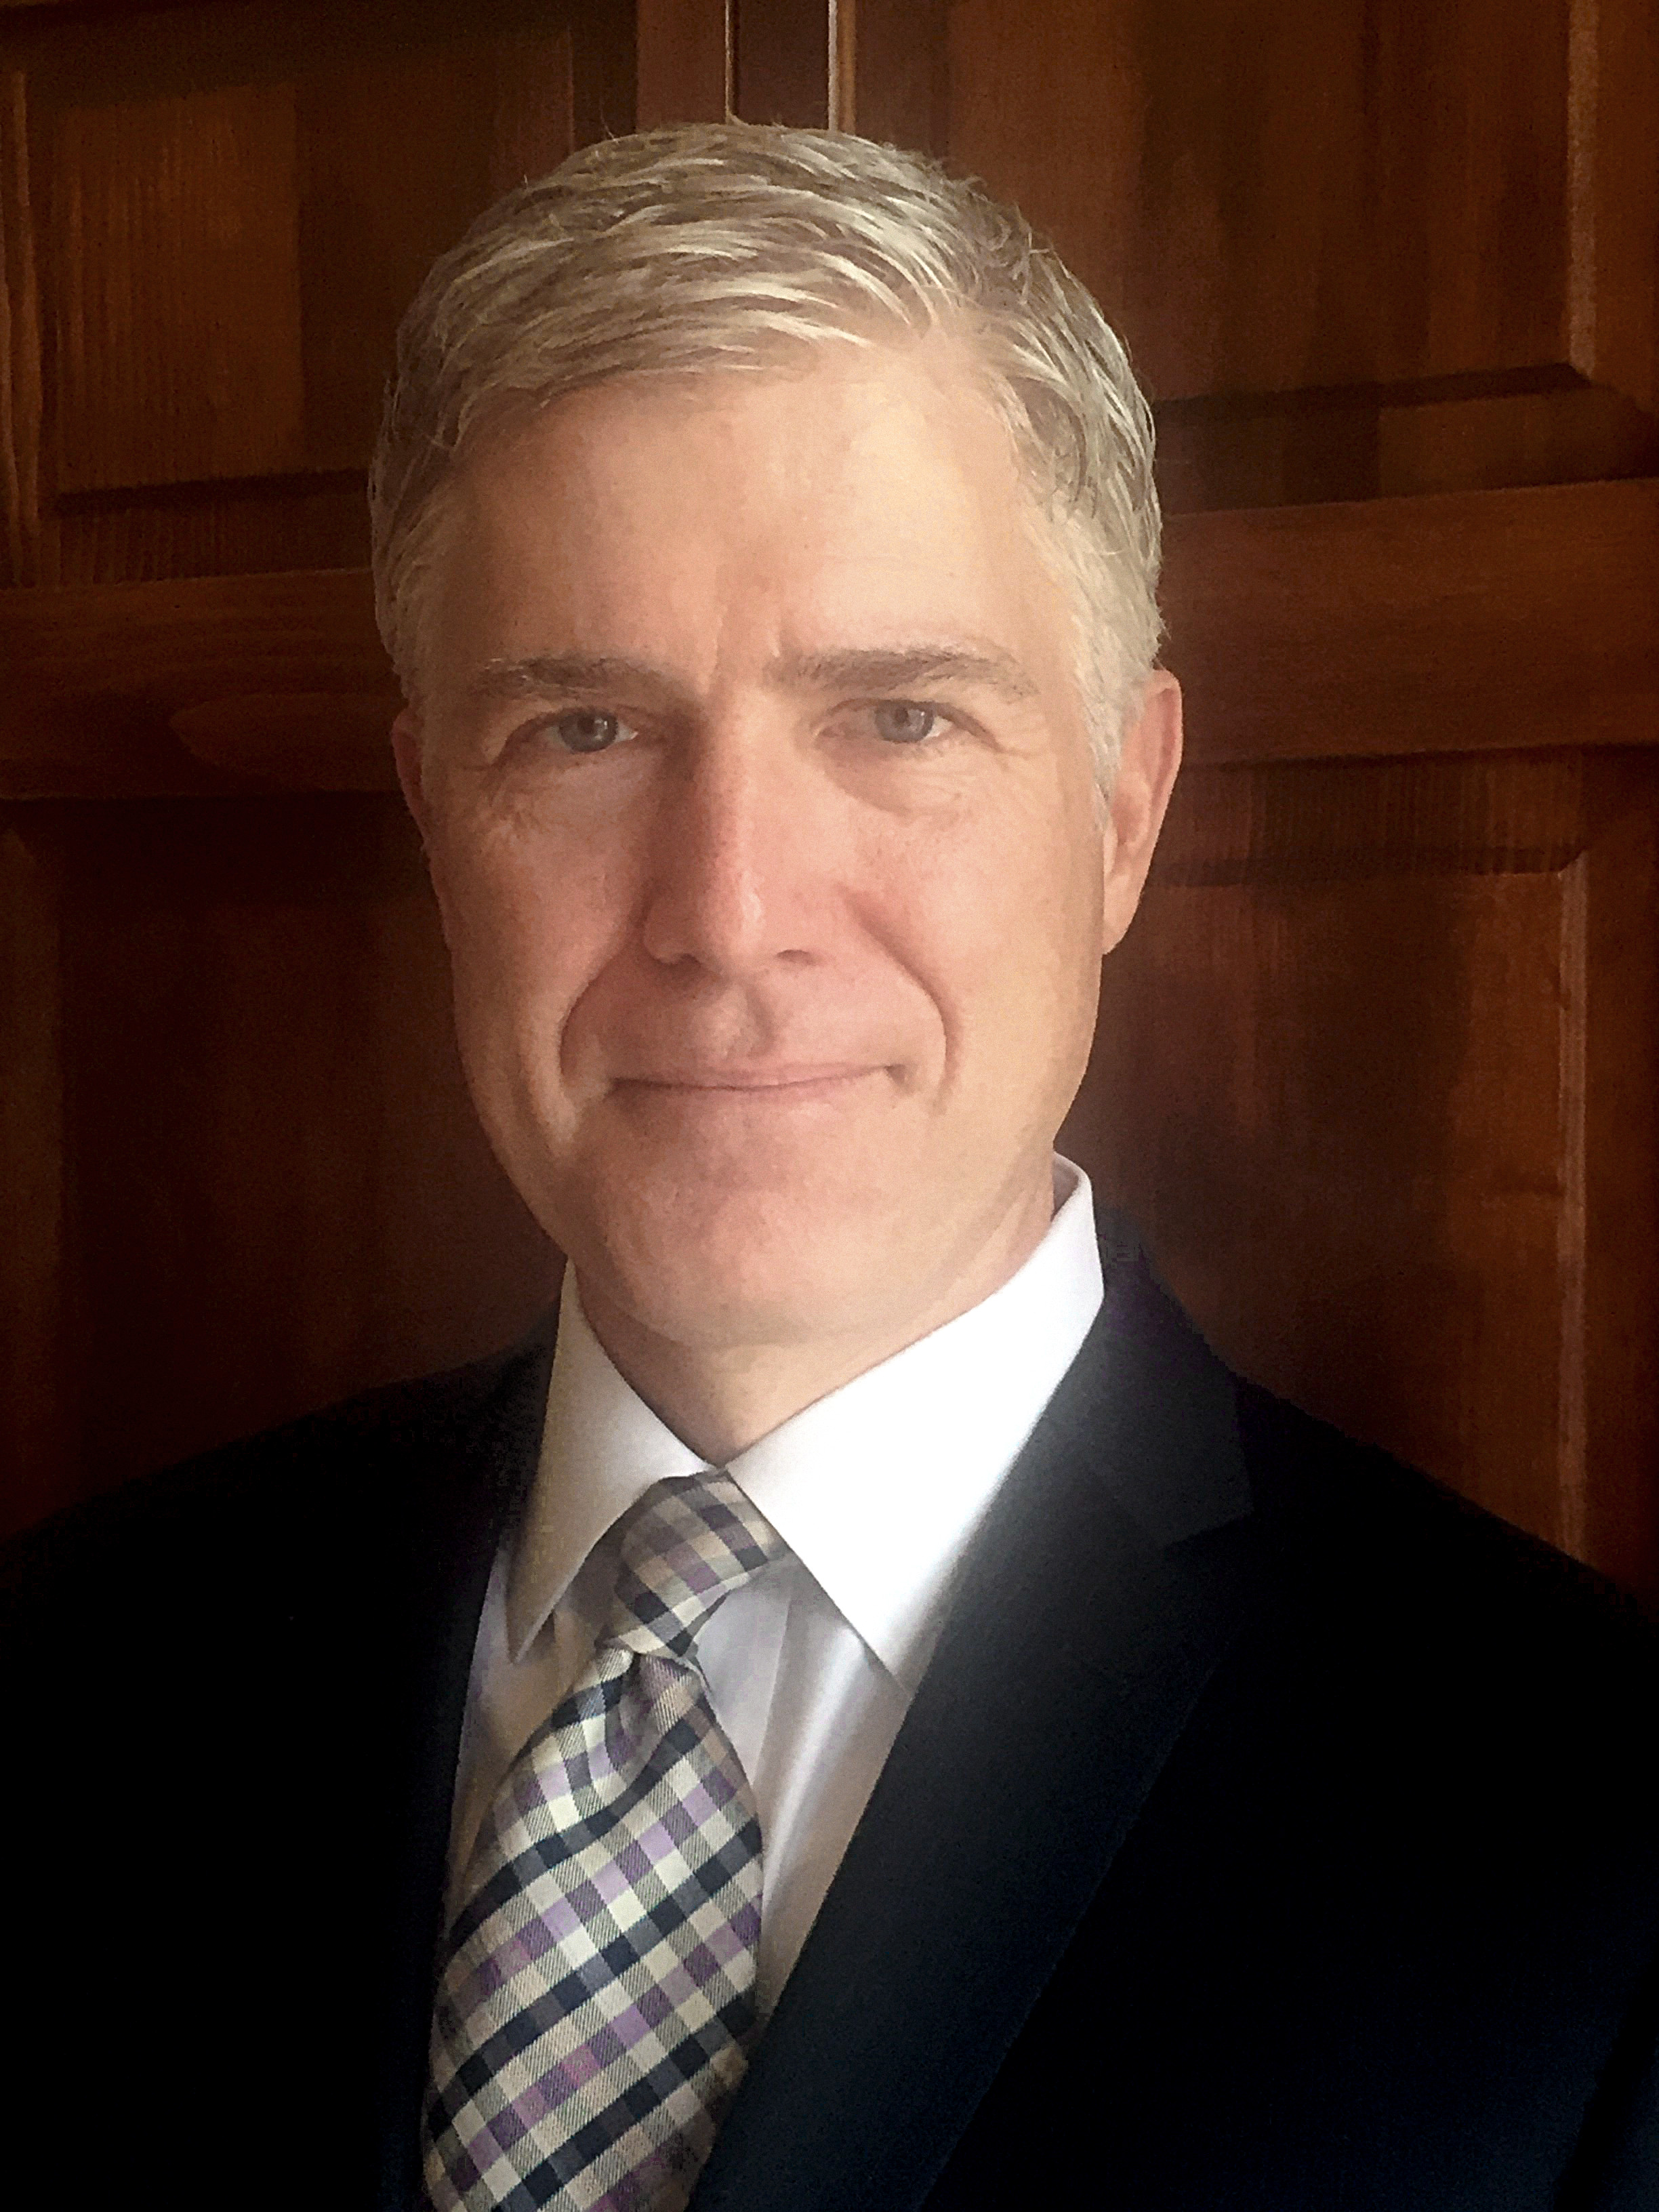 Judge Neil Gorsuch is President Donald Trump's nominee for the US Supreme Court.